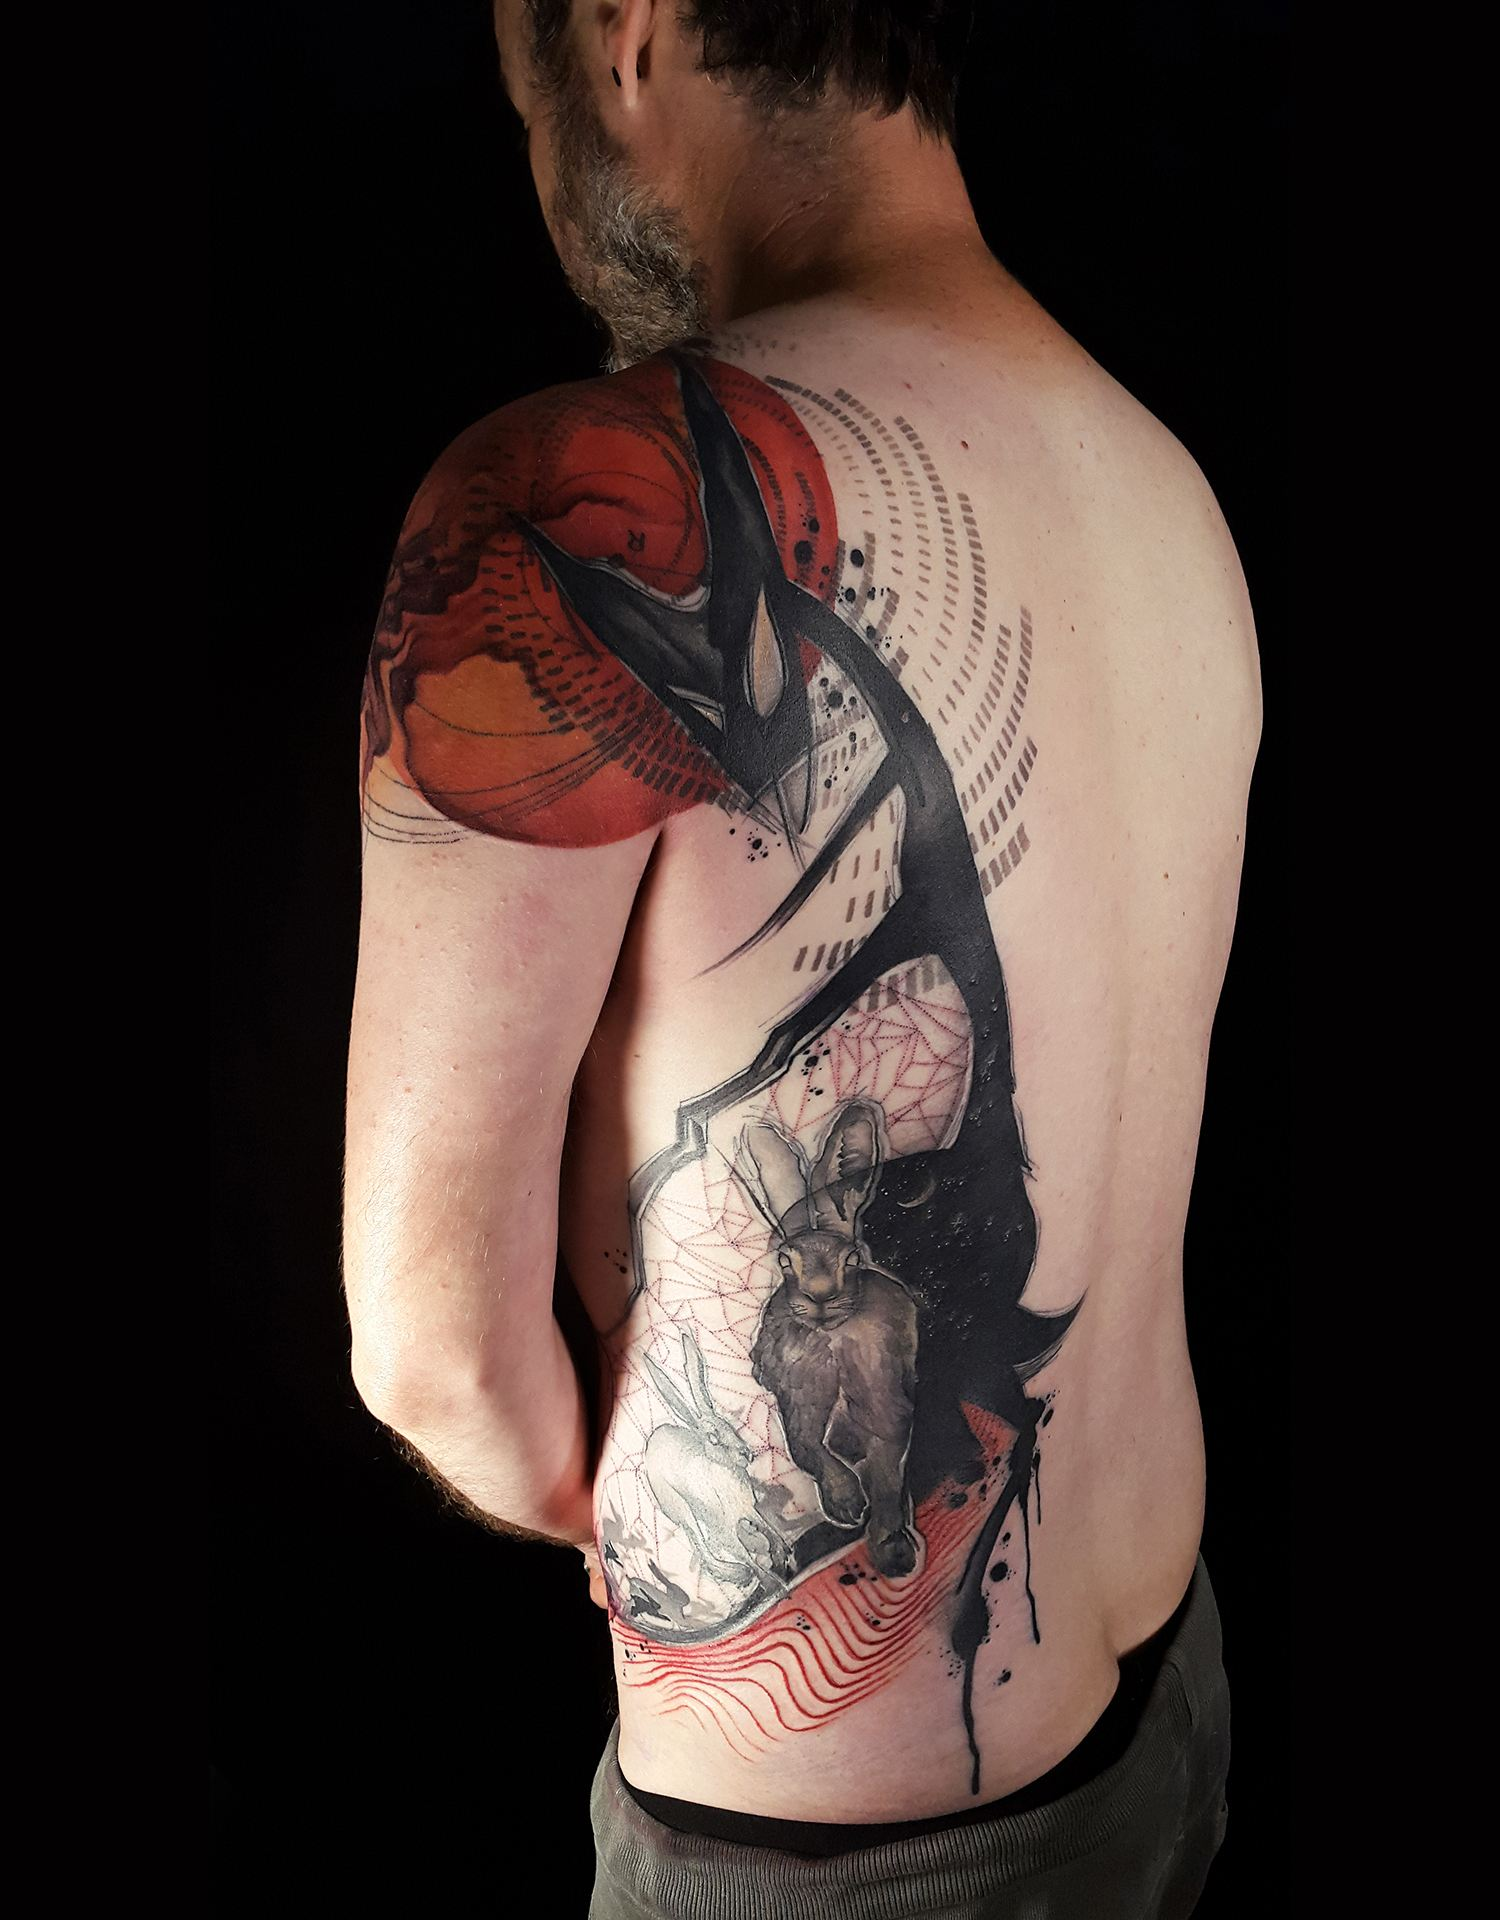 back and shoulder tattoo, red and black ink, tattoo